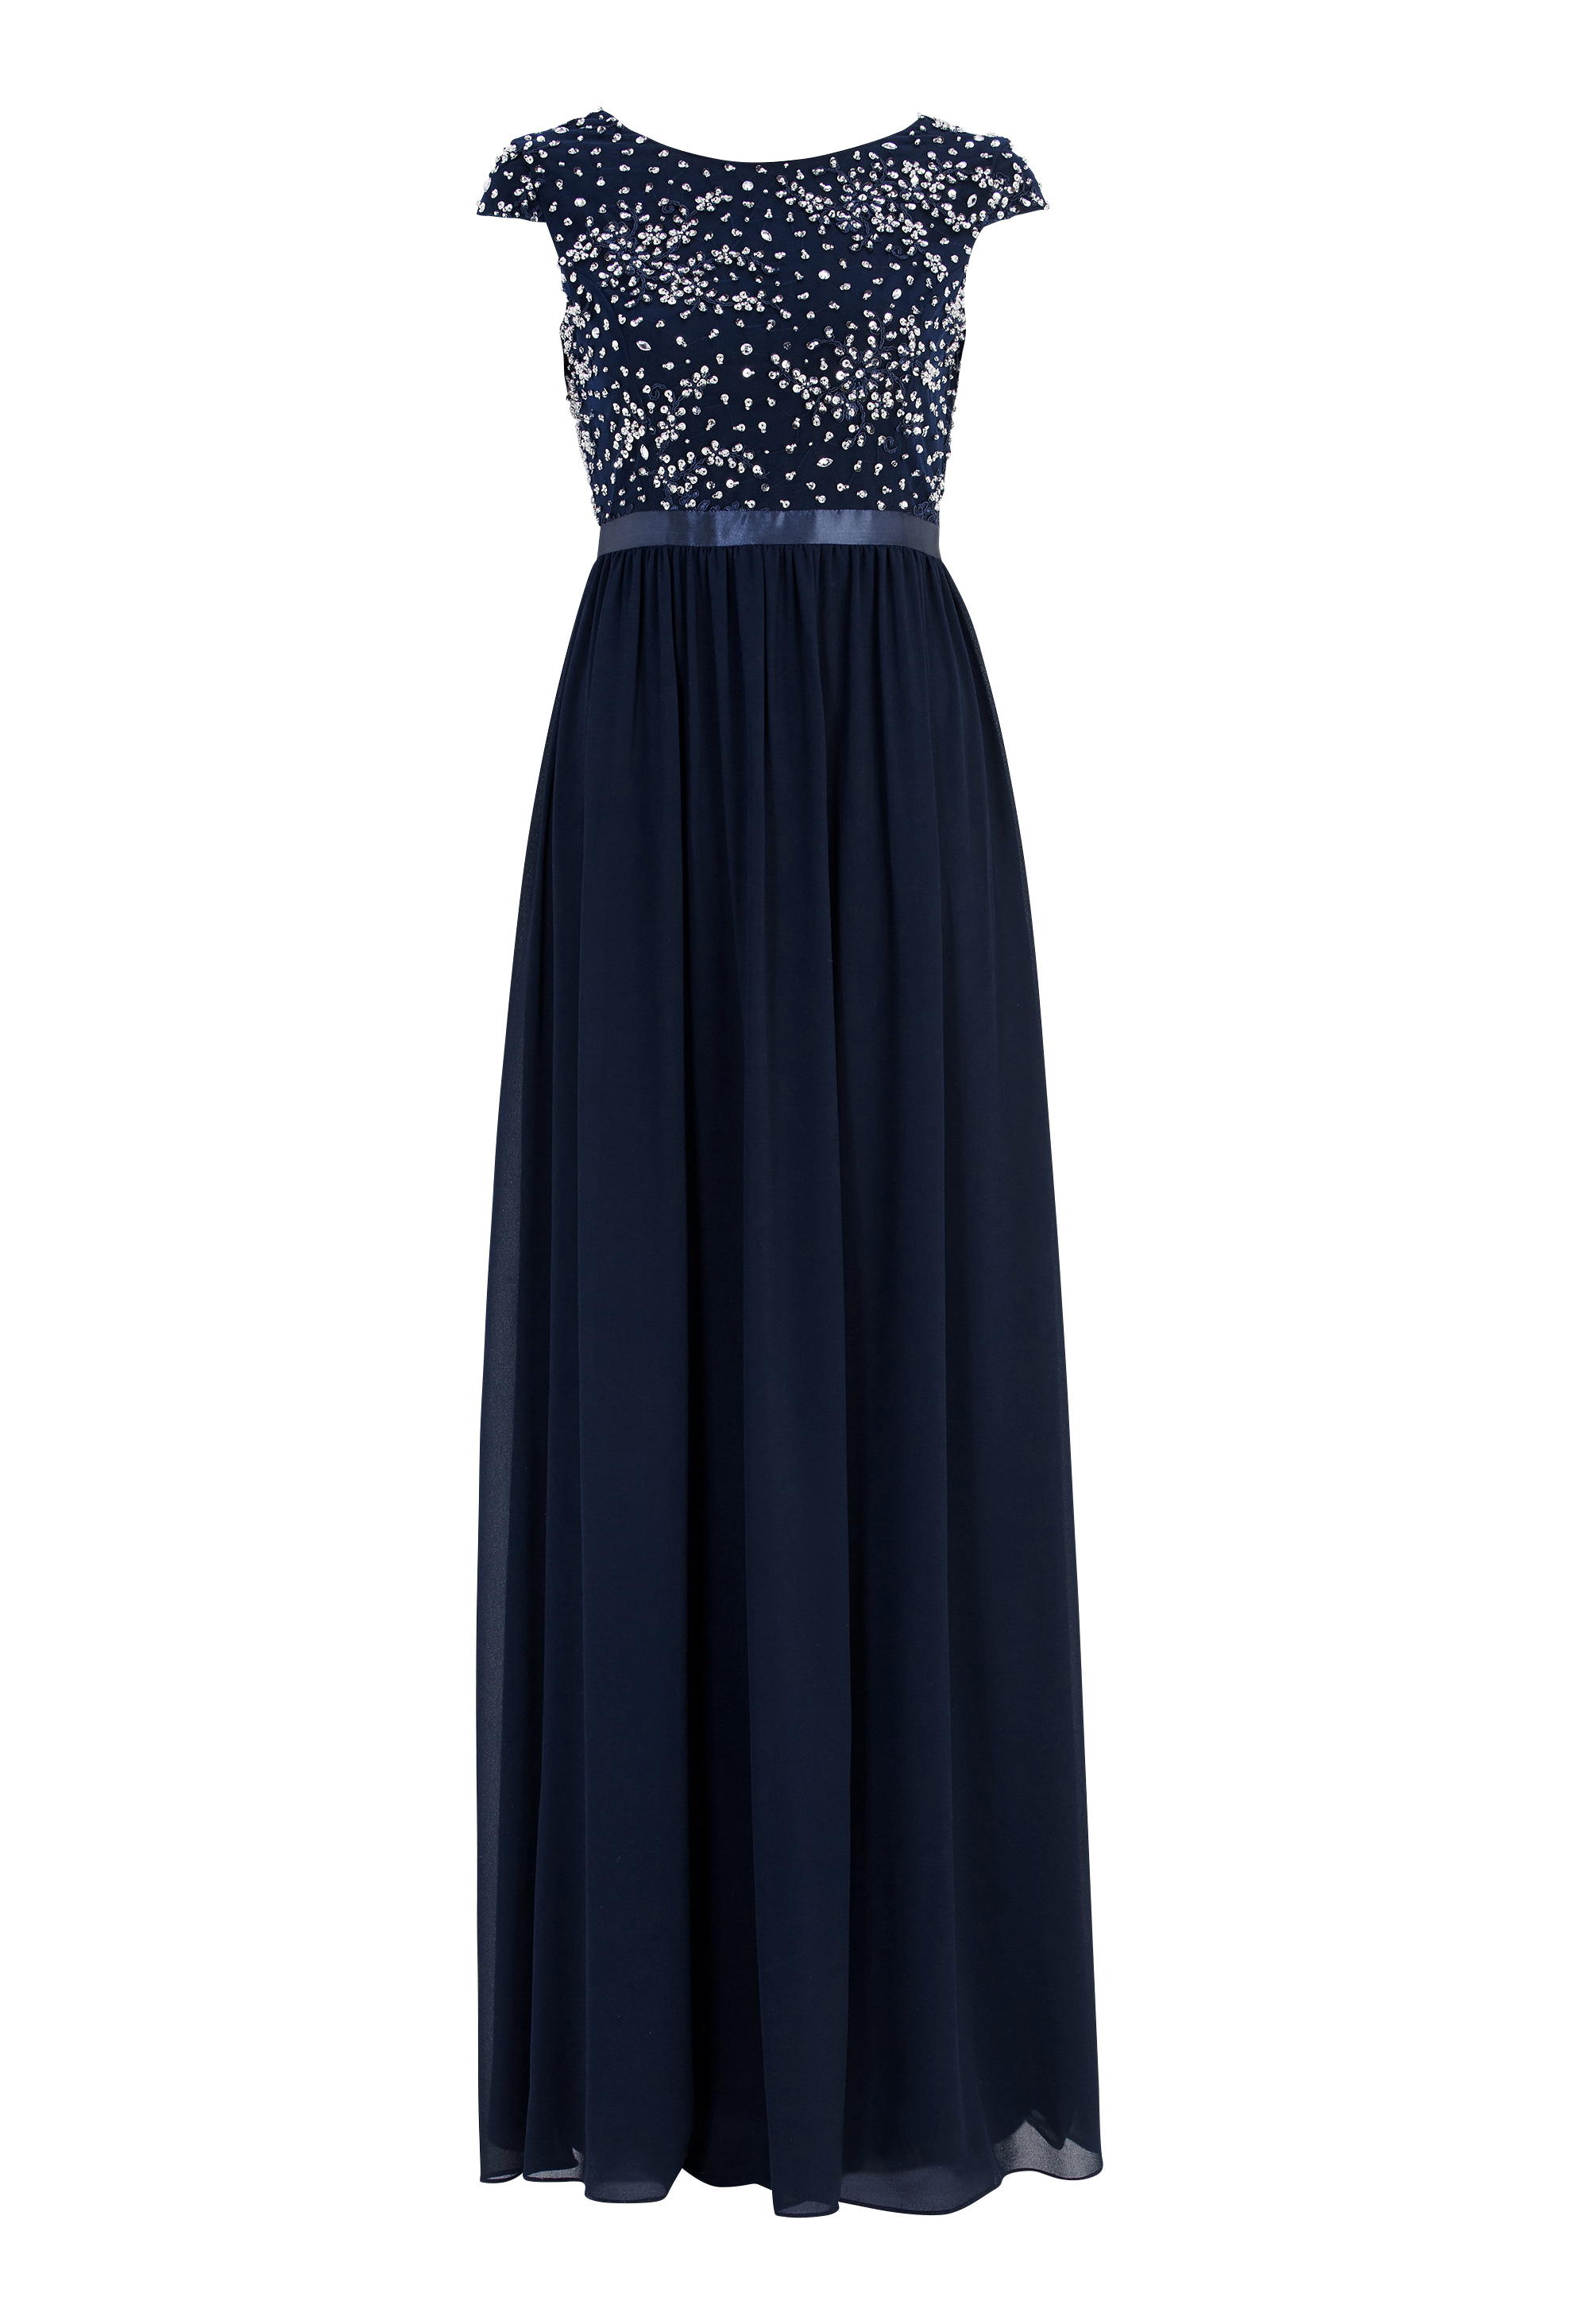 25cb1d0d Chiara Forthi Viviere Sparkling Gown Midnight blue - Bubbleroom